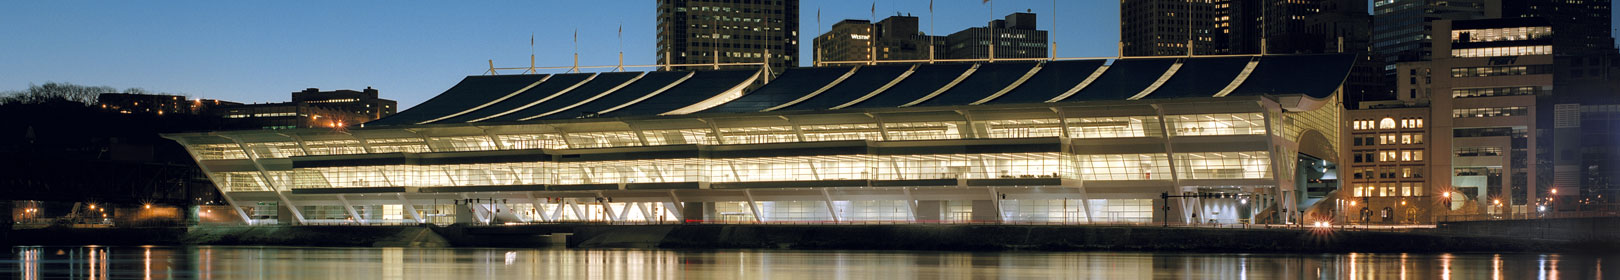 Lighthouse Electric | David L. Lawrence Convention Center